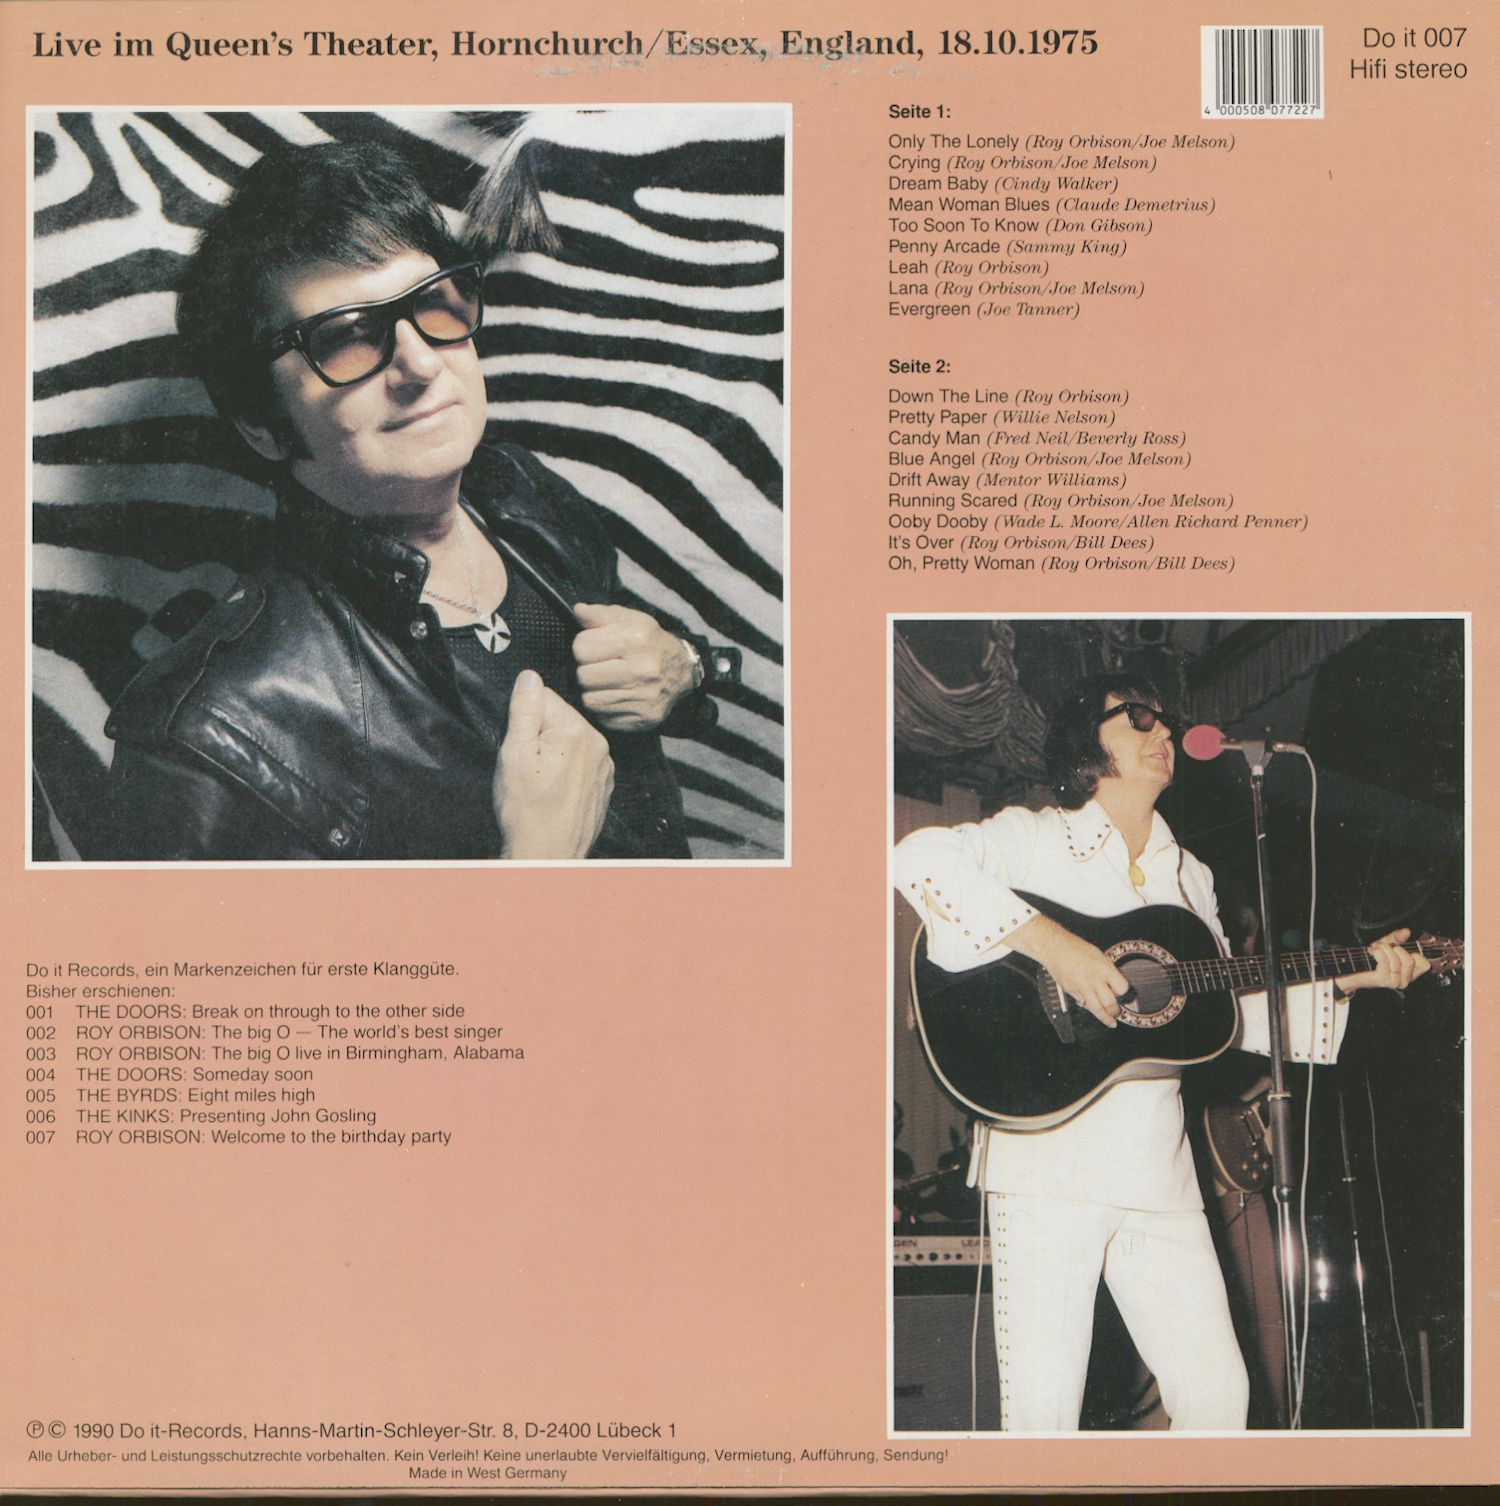 Roy Orbison Welcome To My Birthday Party - England 1975 (LP)